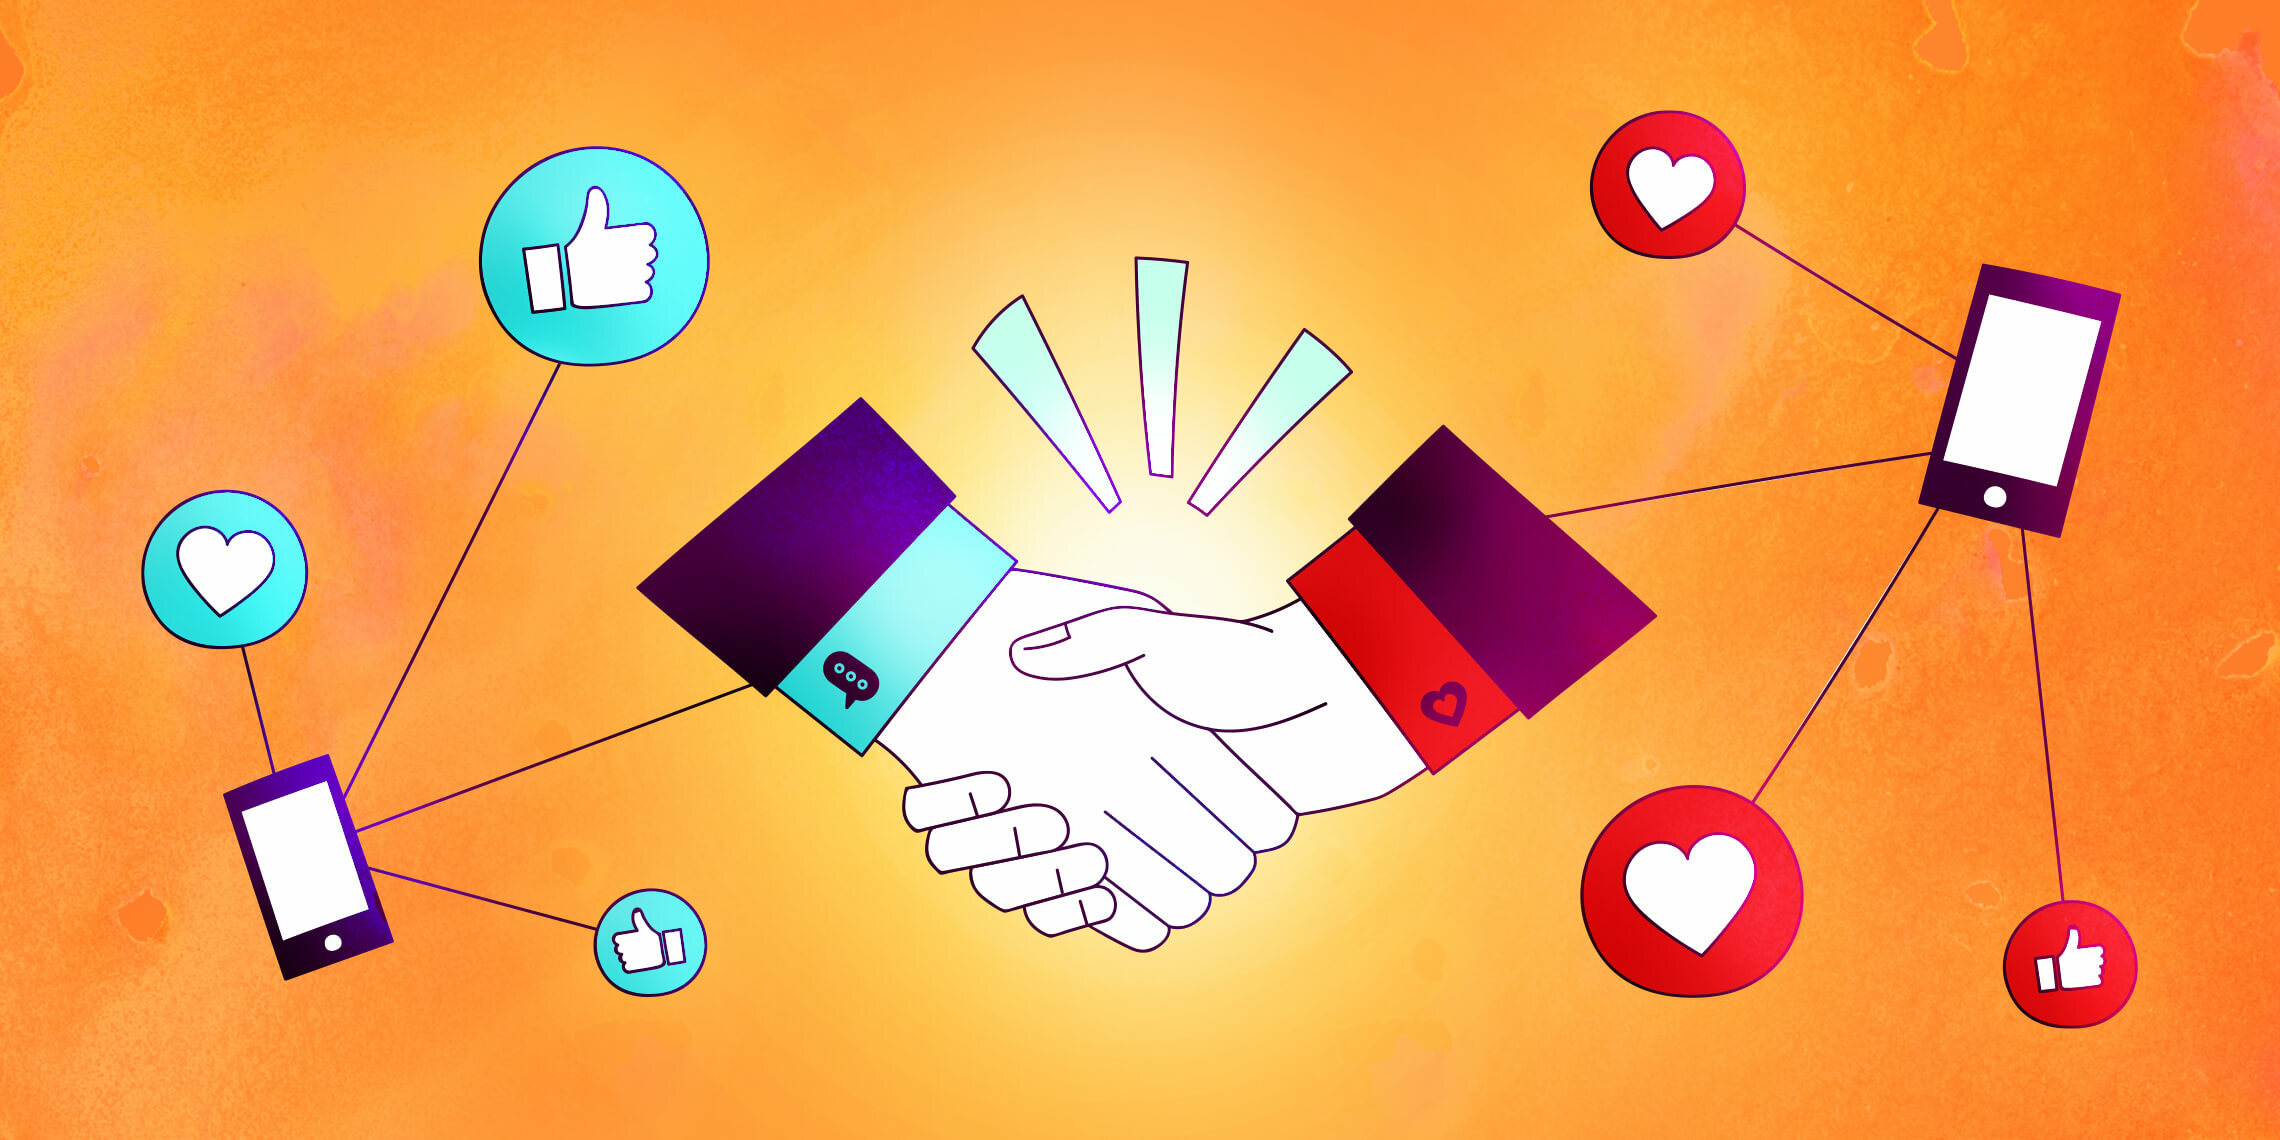 a business agreement made over social media selling